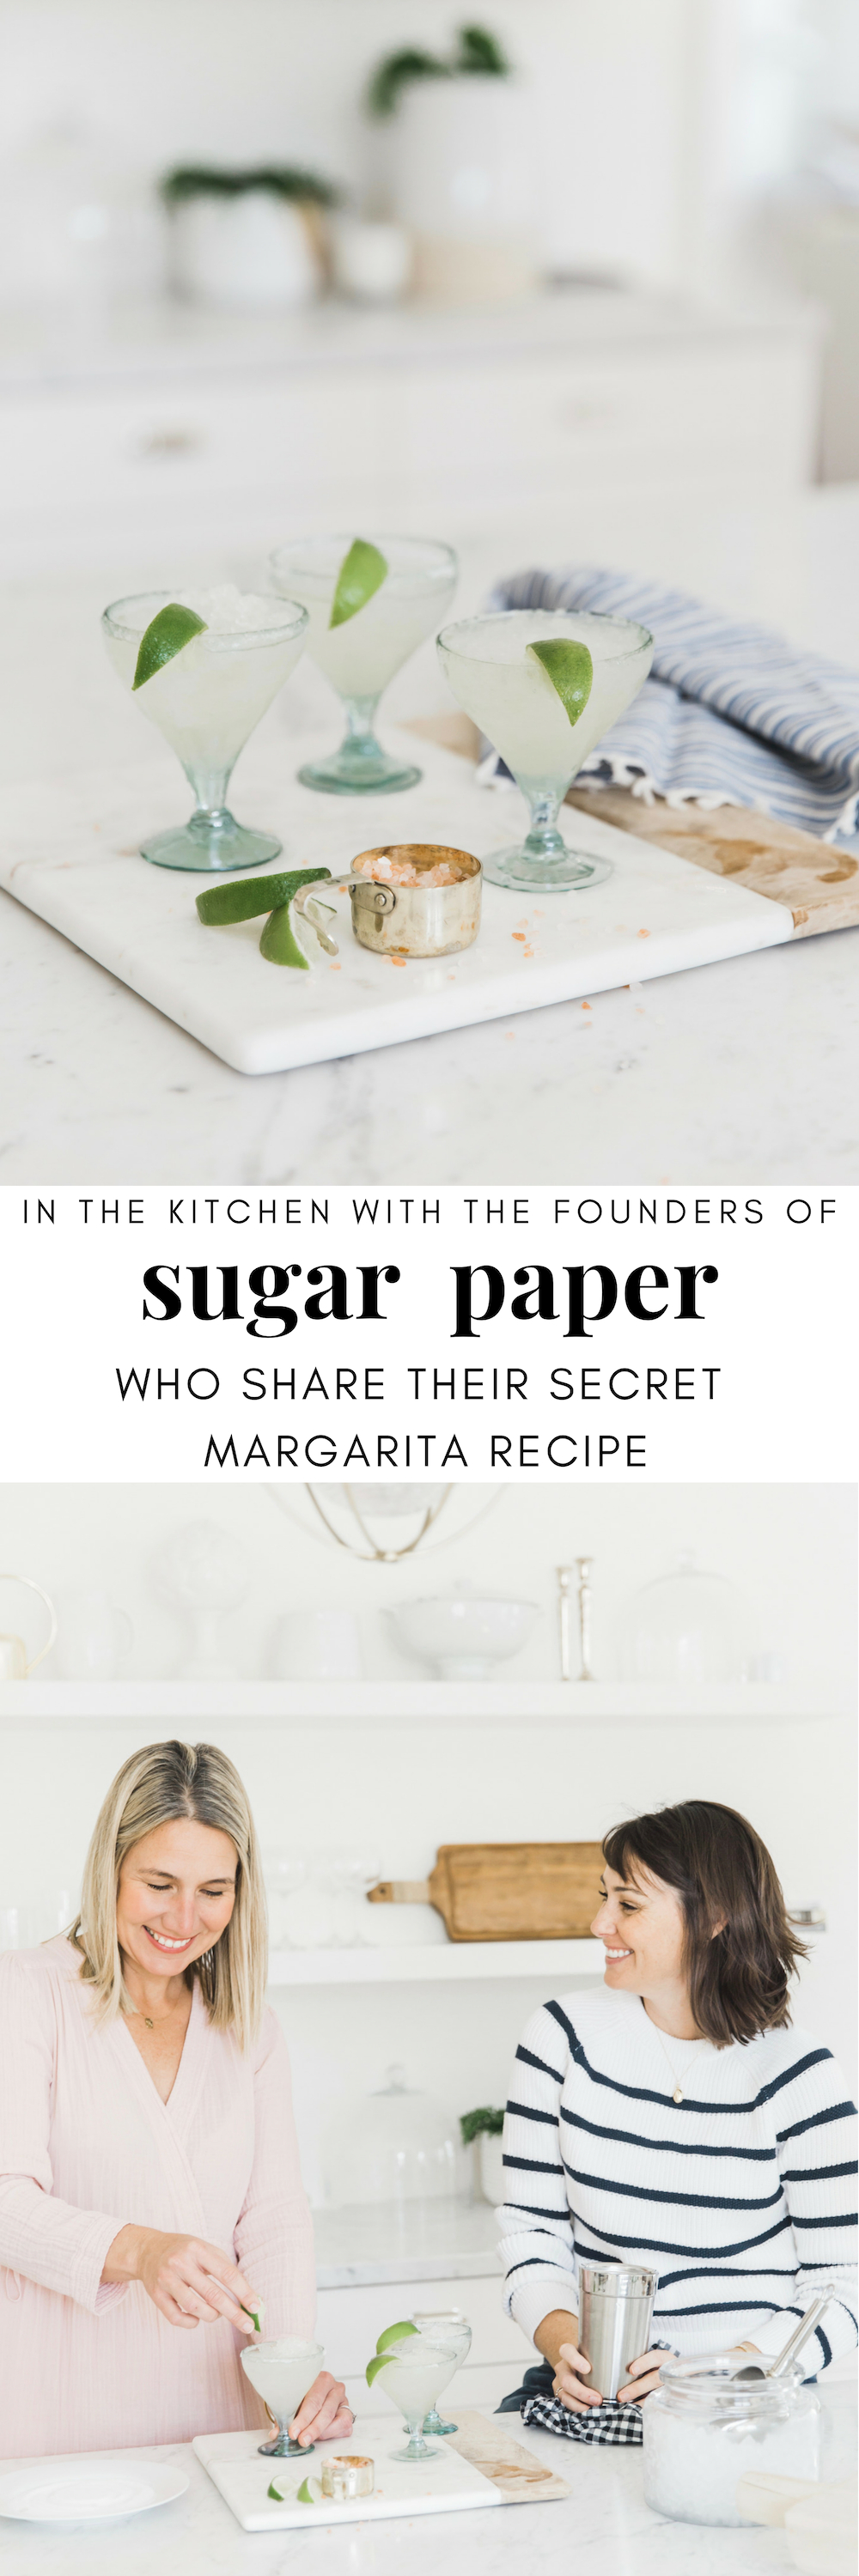 Sugar Paper Interview